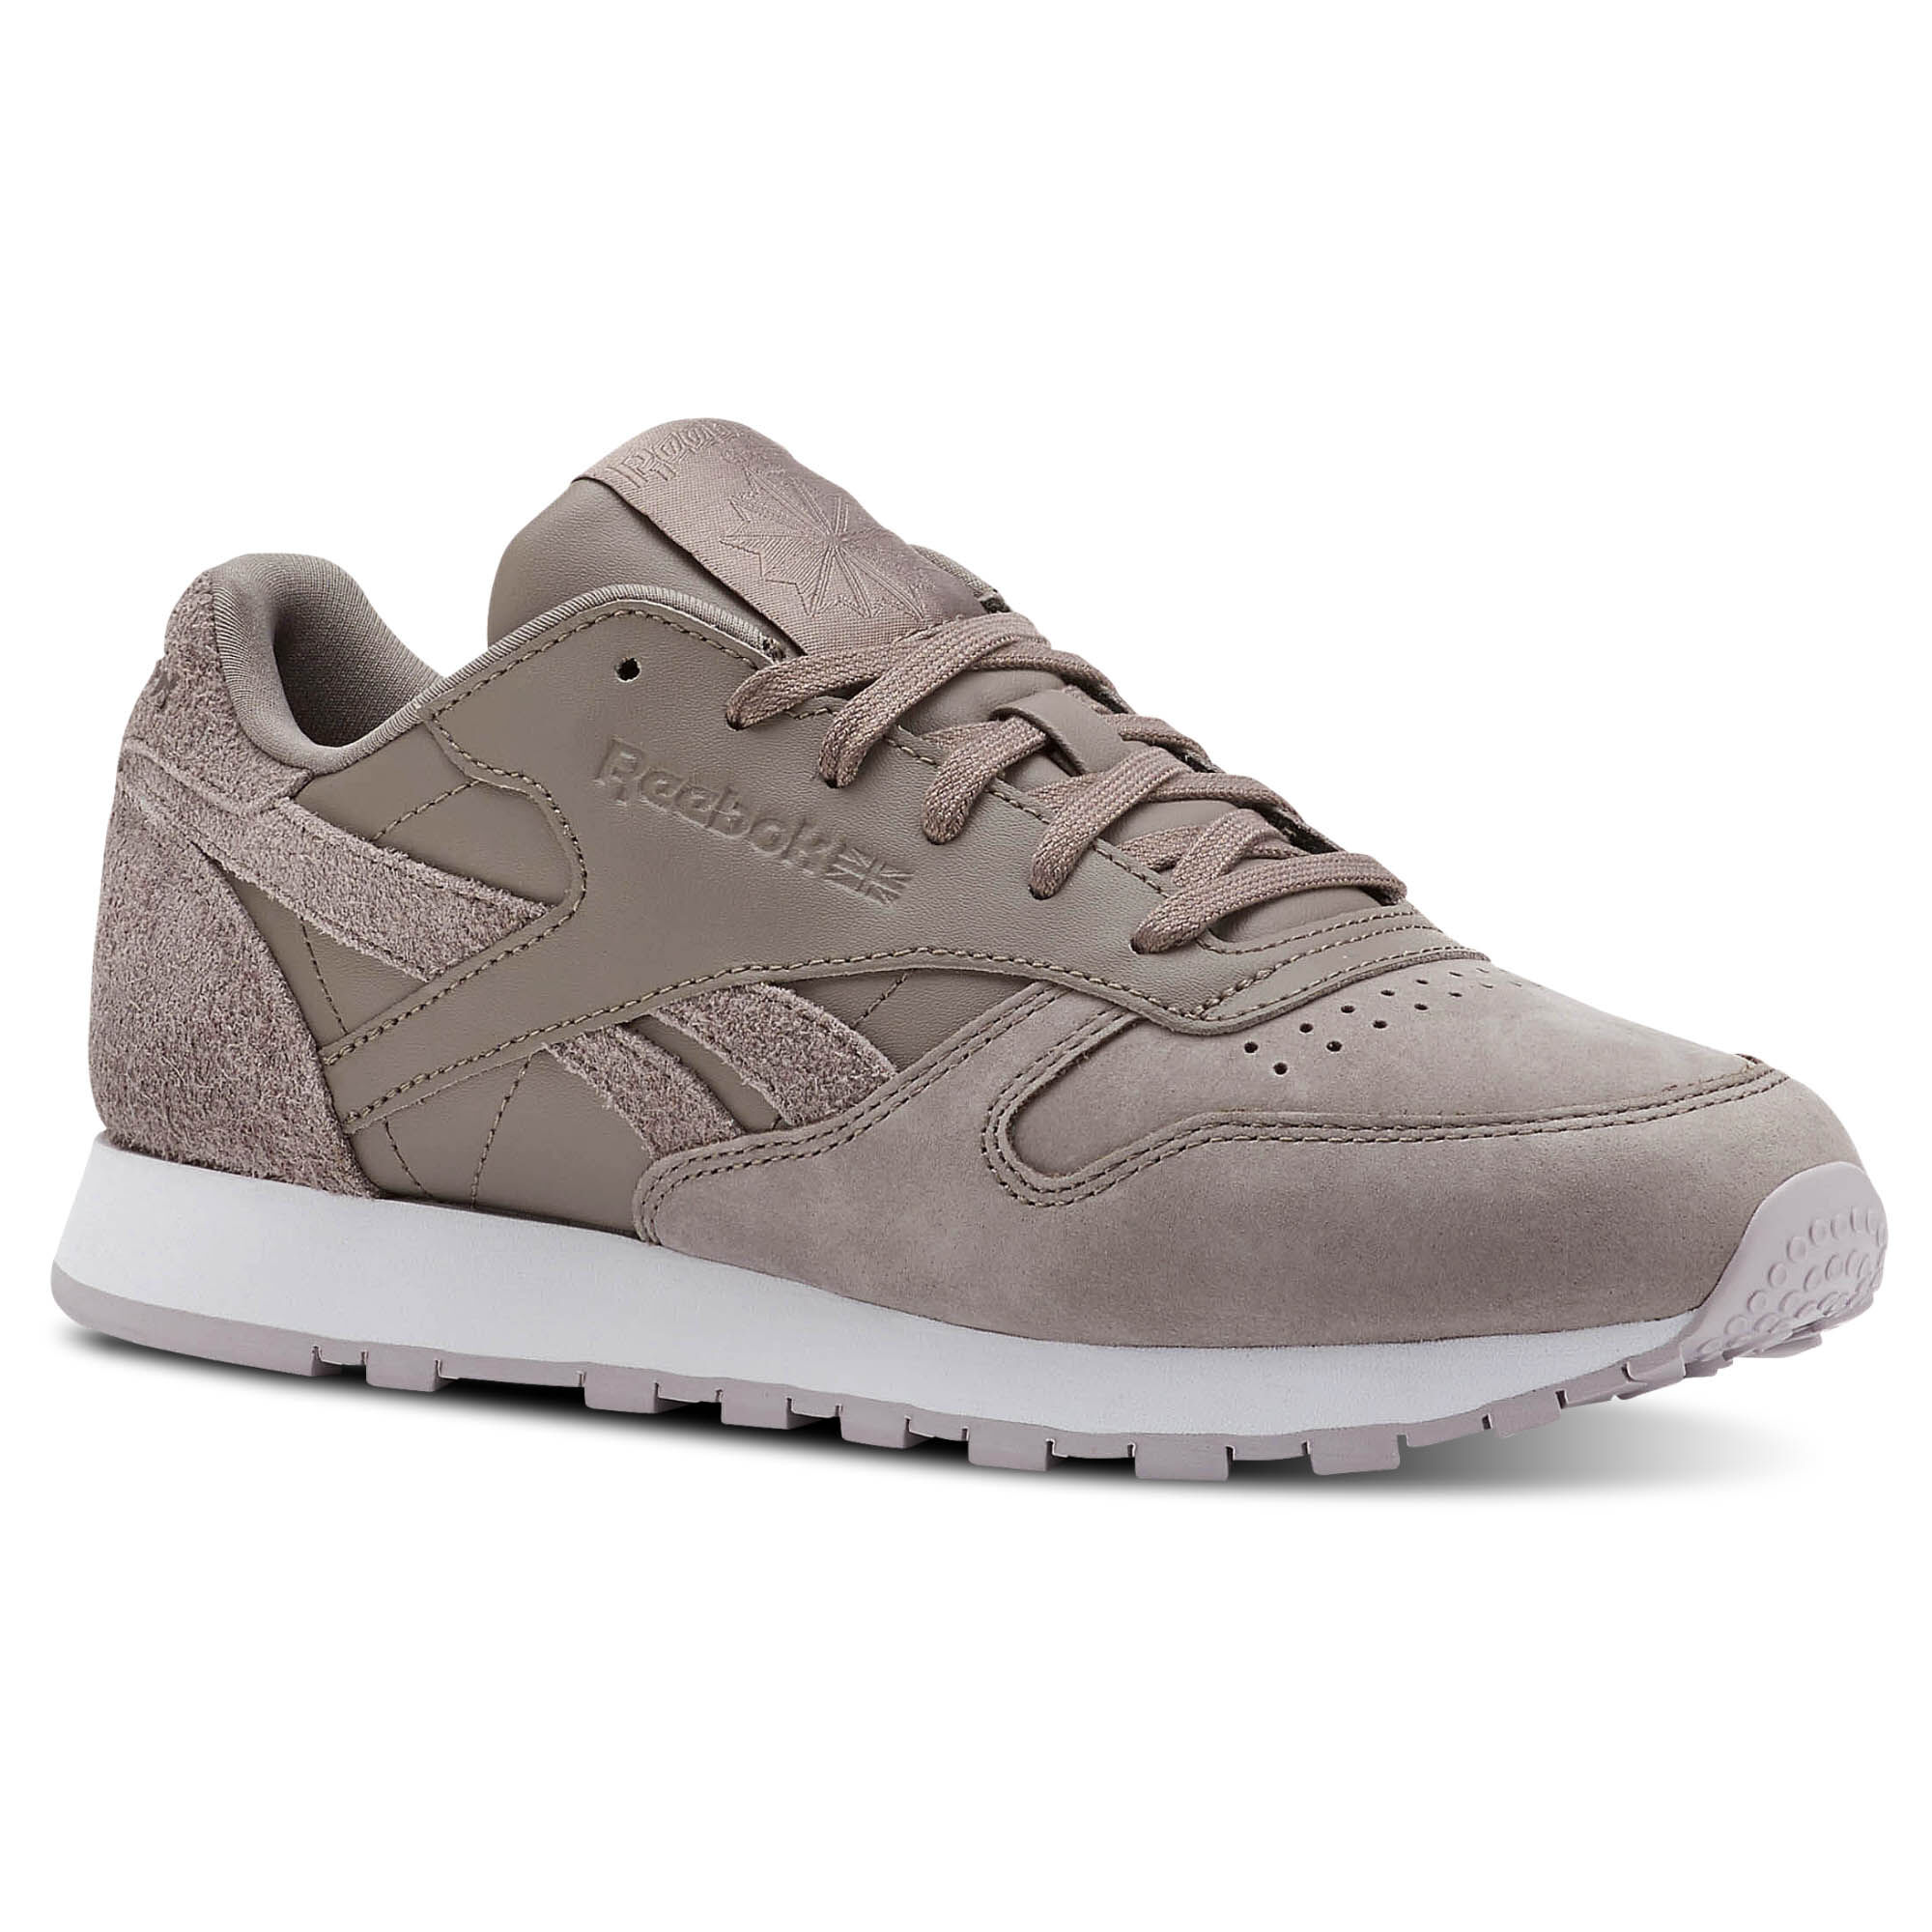 Reebok Classic CLASSIC - Trainers - sandy taupe/lavender 6LY7C6OO